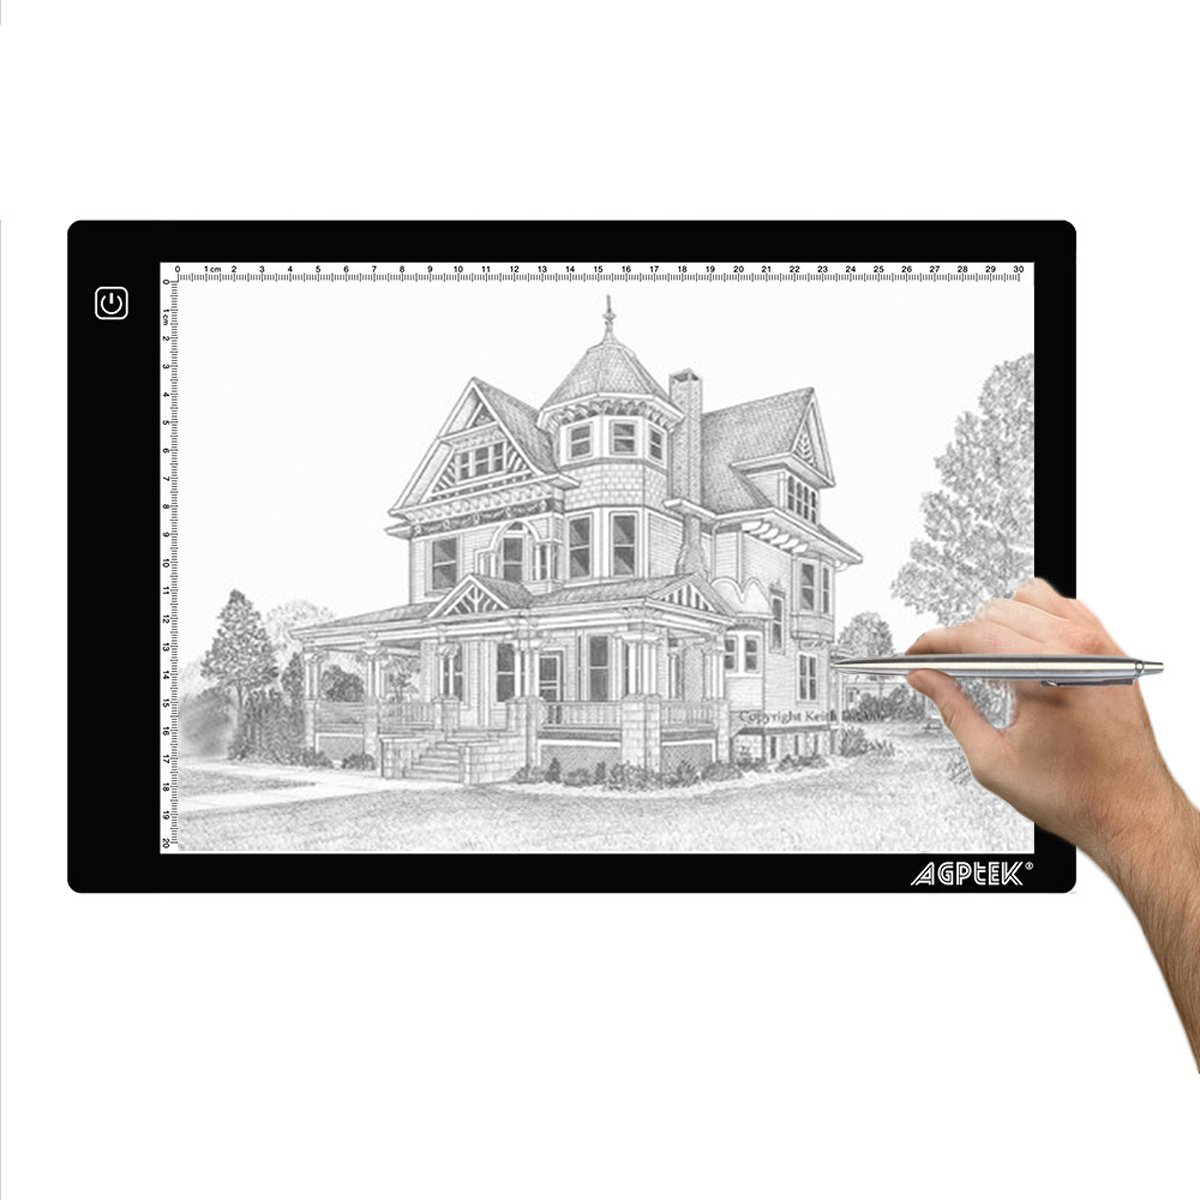 AGPtek 17-Inch A4 Size Portable LED Artcraft Tracing Light Pad Light Box Brightness Control with USB Adapter For Artists, Drawing, Sketching, Animation, X-ray Viewing, Sewing, Tattoo, Quilting